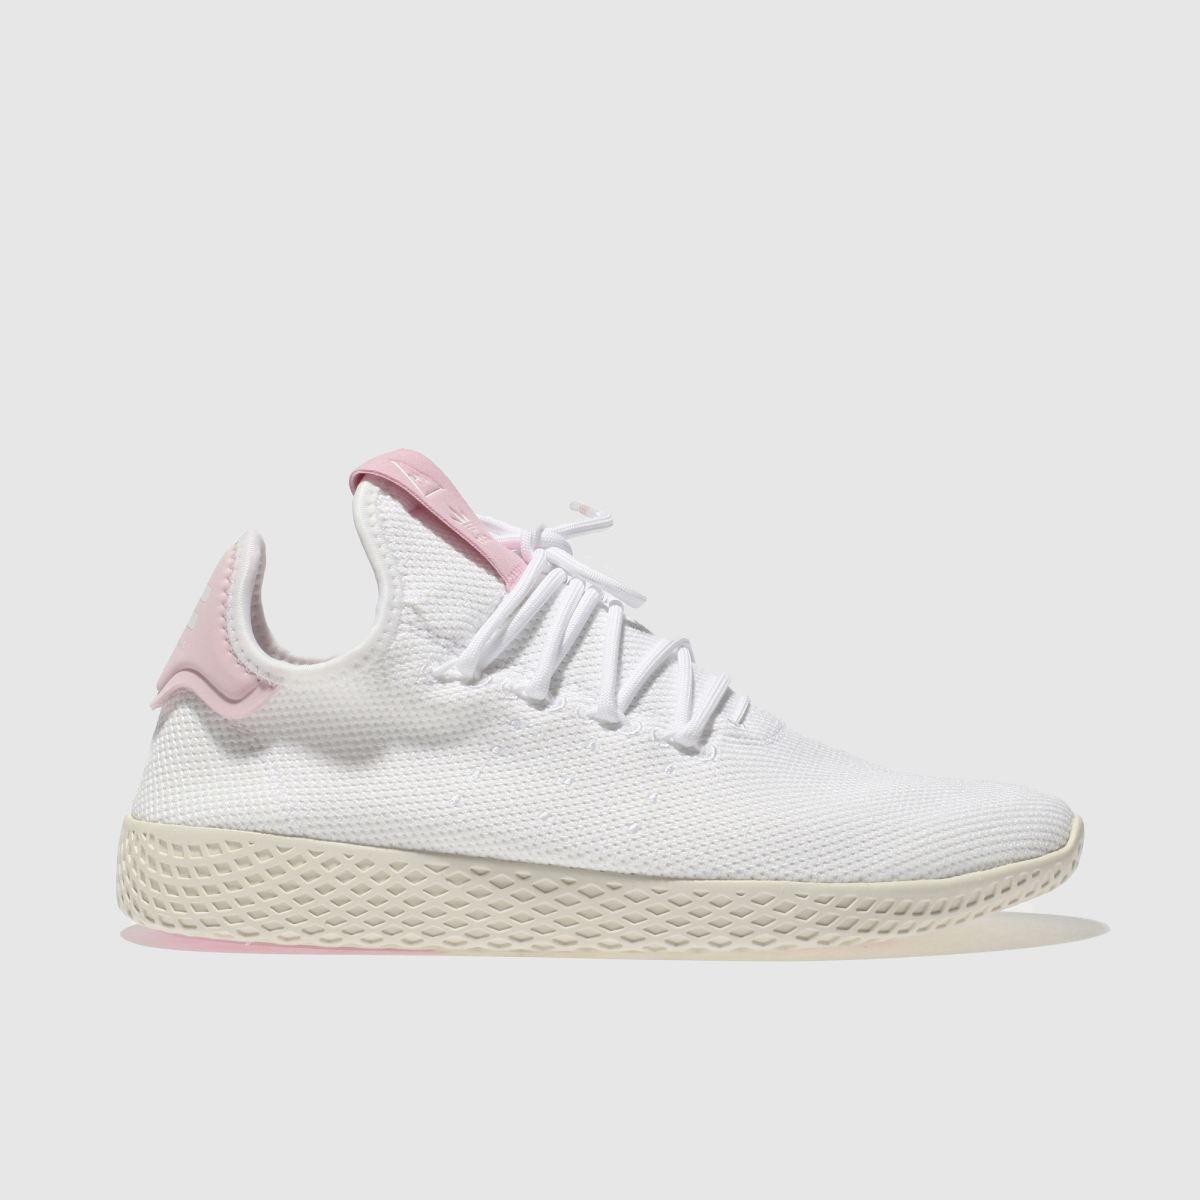 Adidas White & Pink Pharrell Willliams Tennis Hu Trainers